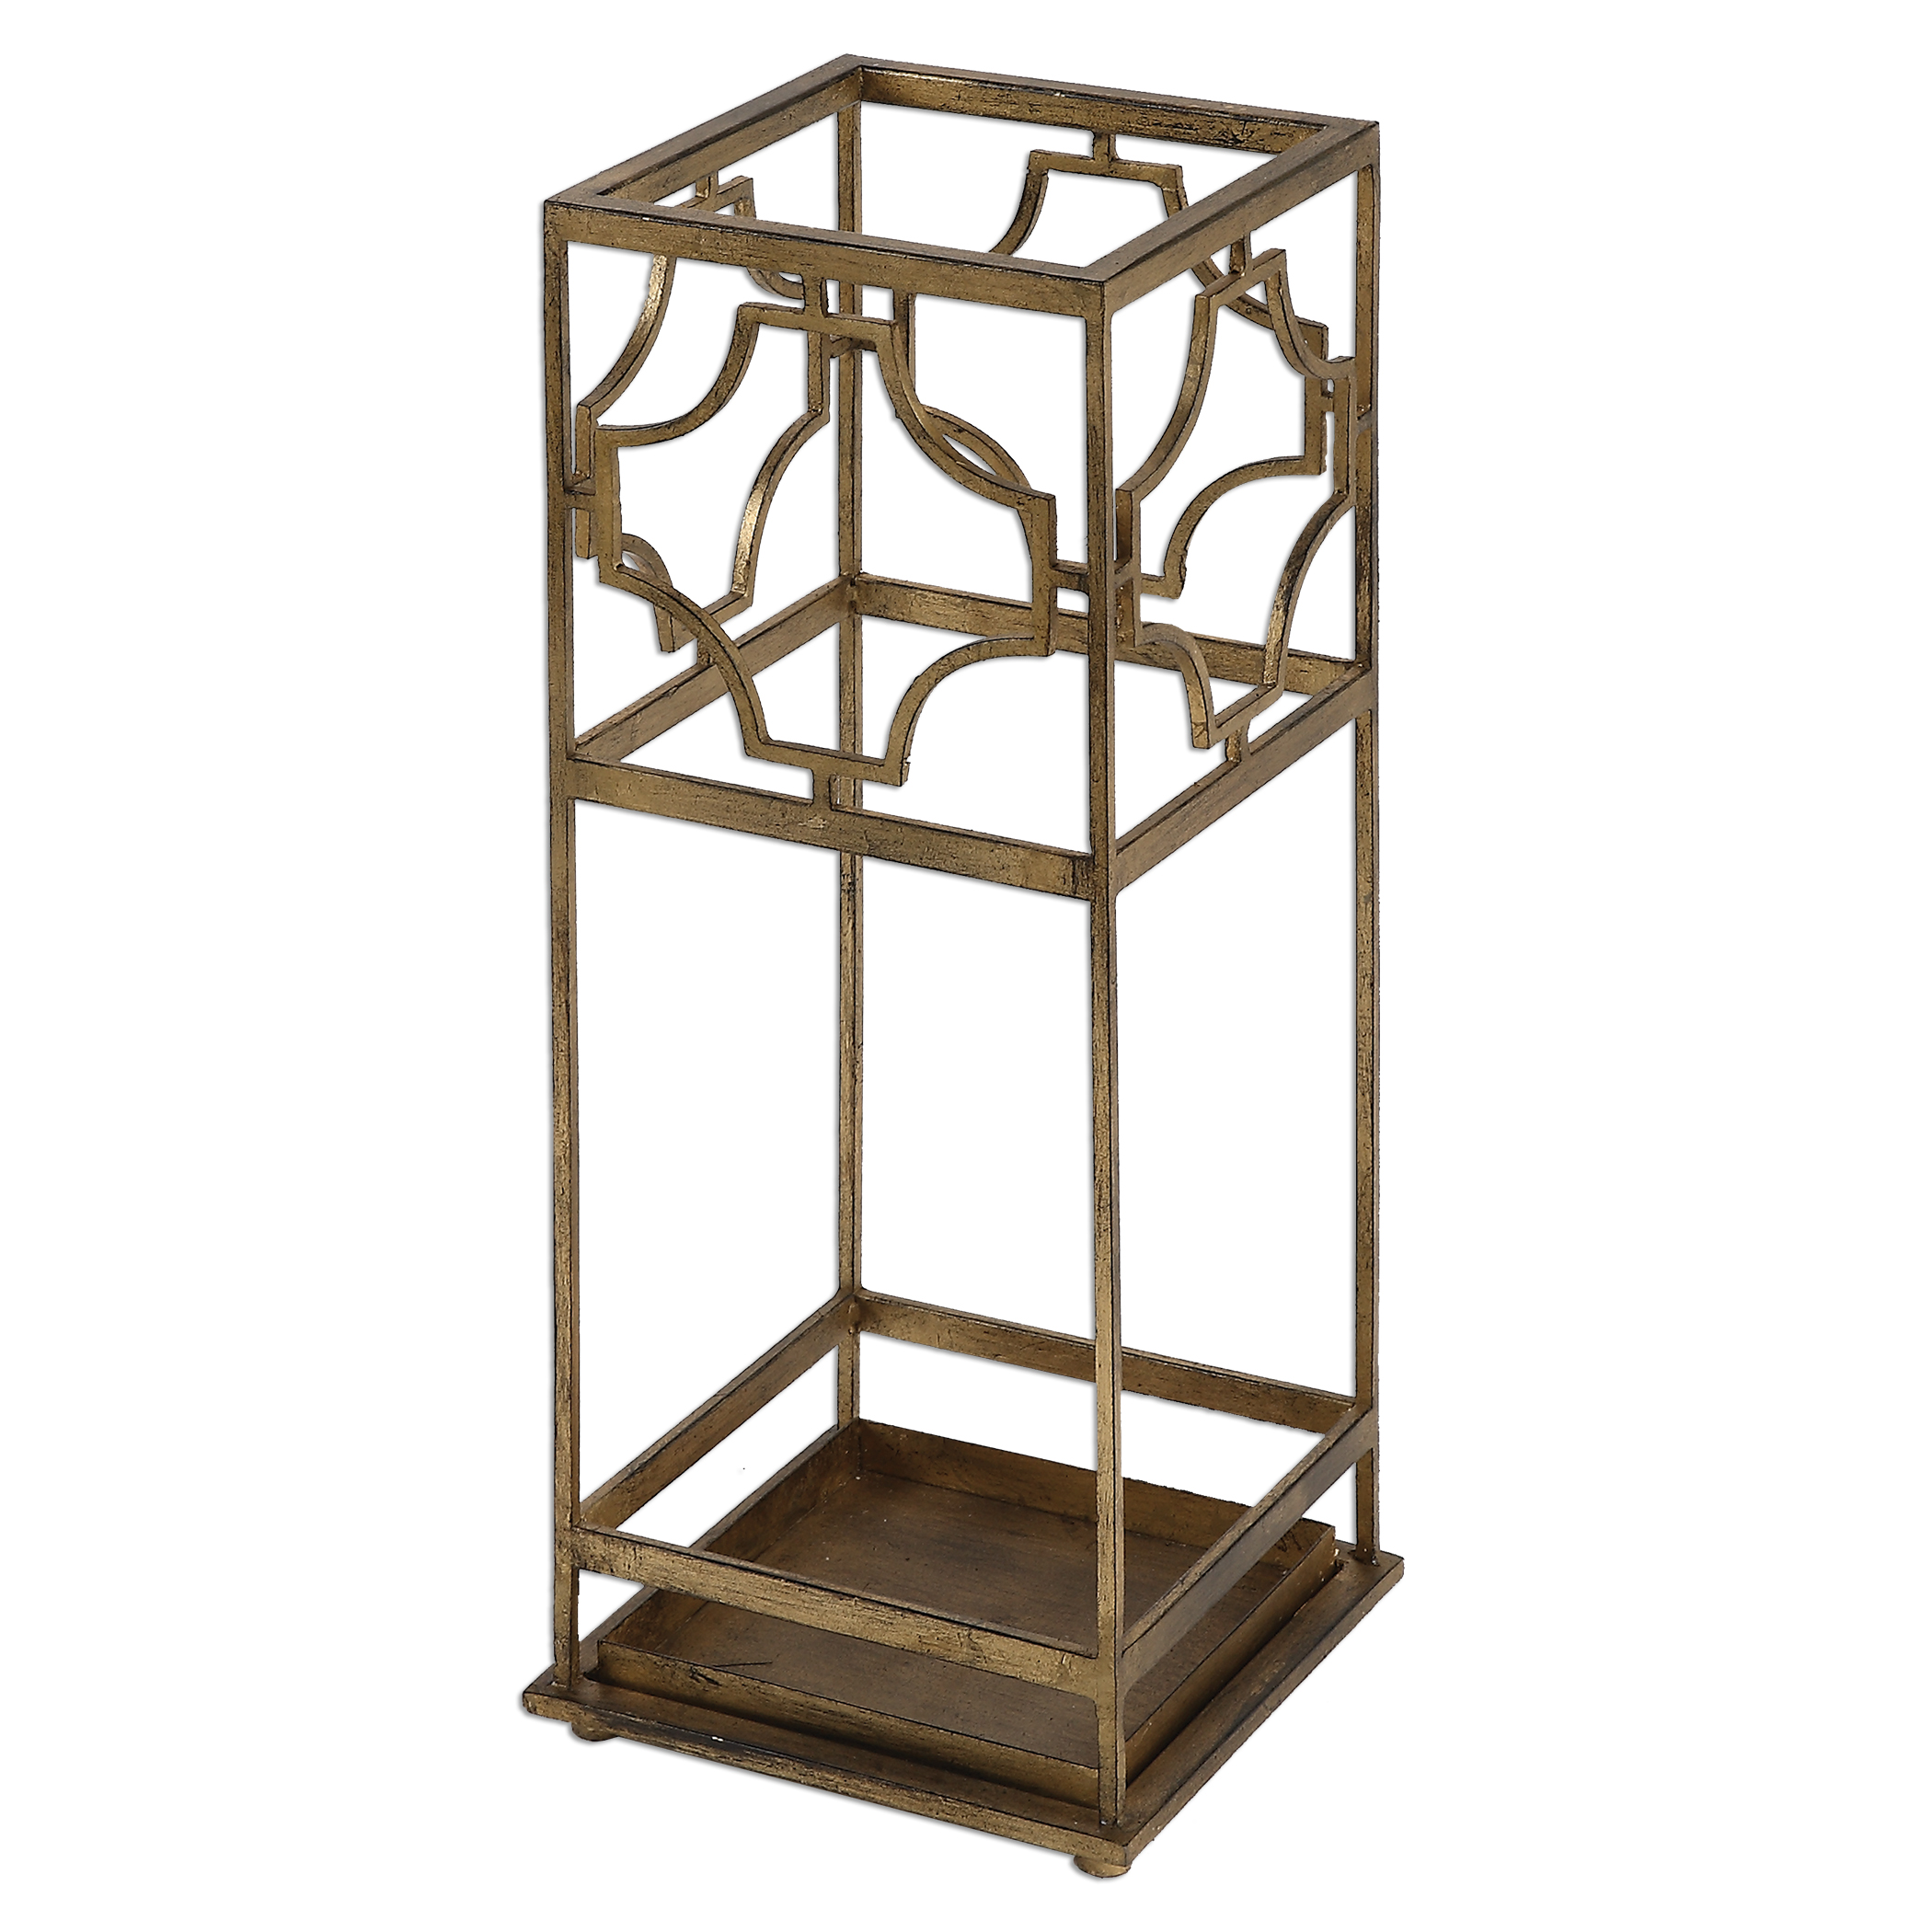 Uttermost Accent Furniture Genell Gold Iron Umbrella Stand - Item Number: 24553